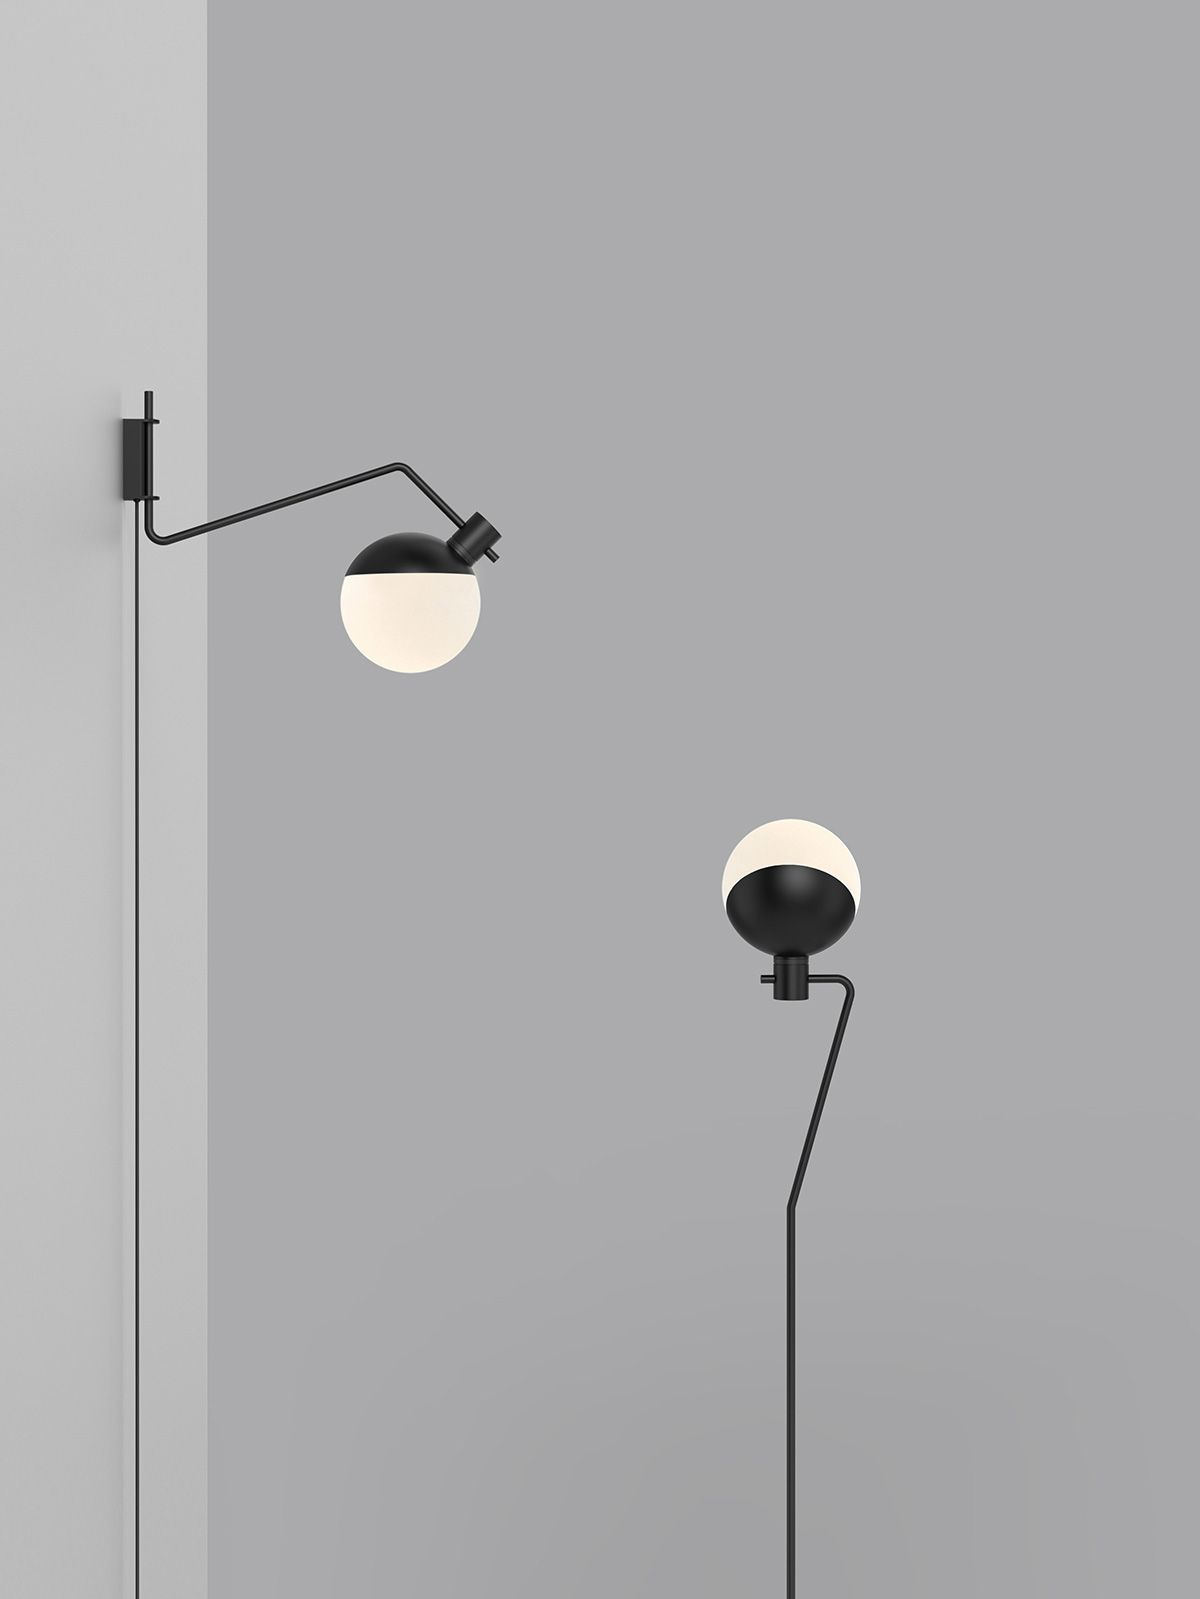 Baluna Lamp Designing Baluna We Aimed To Design Light Itself The Way It Occupies Space And Affects Mood Lamp Design Design Light